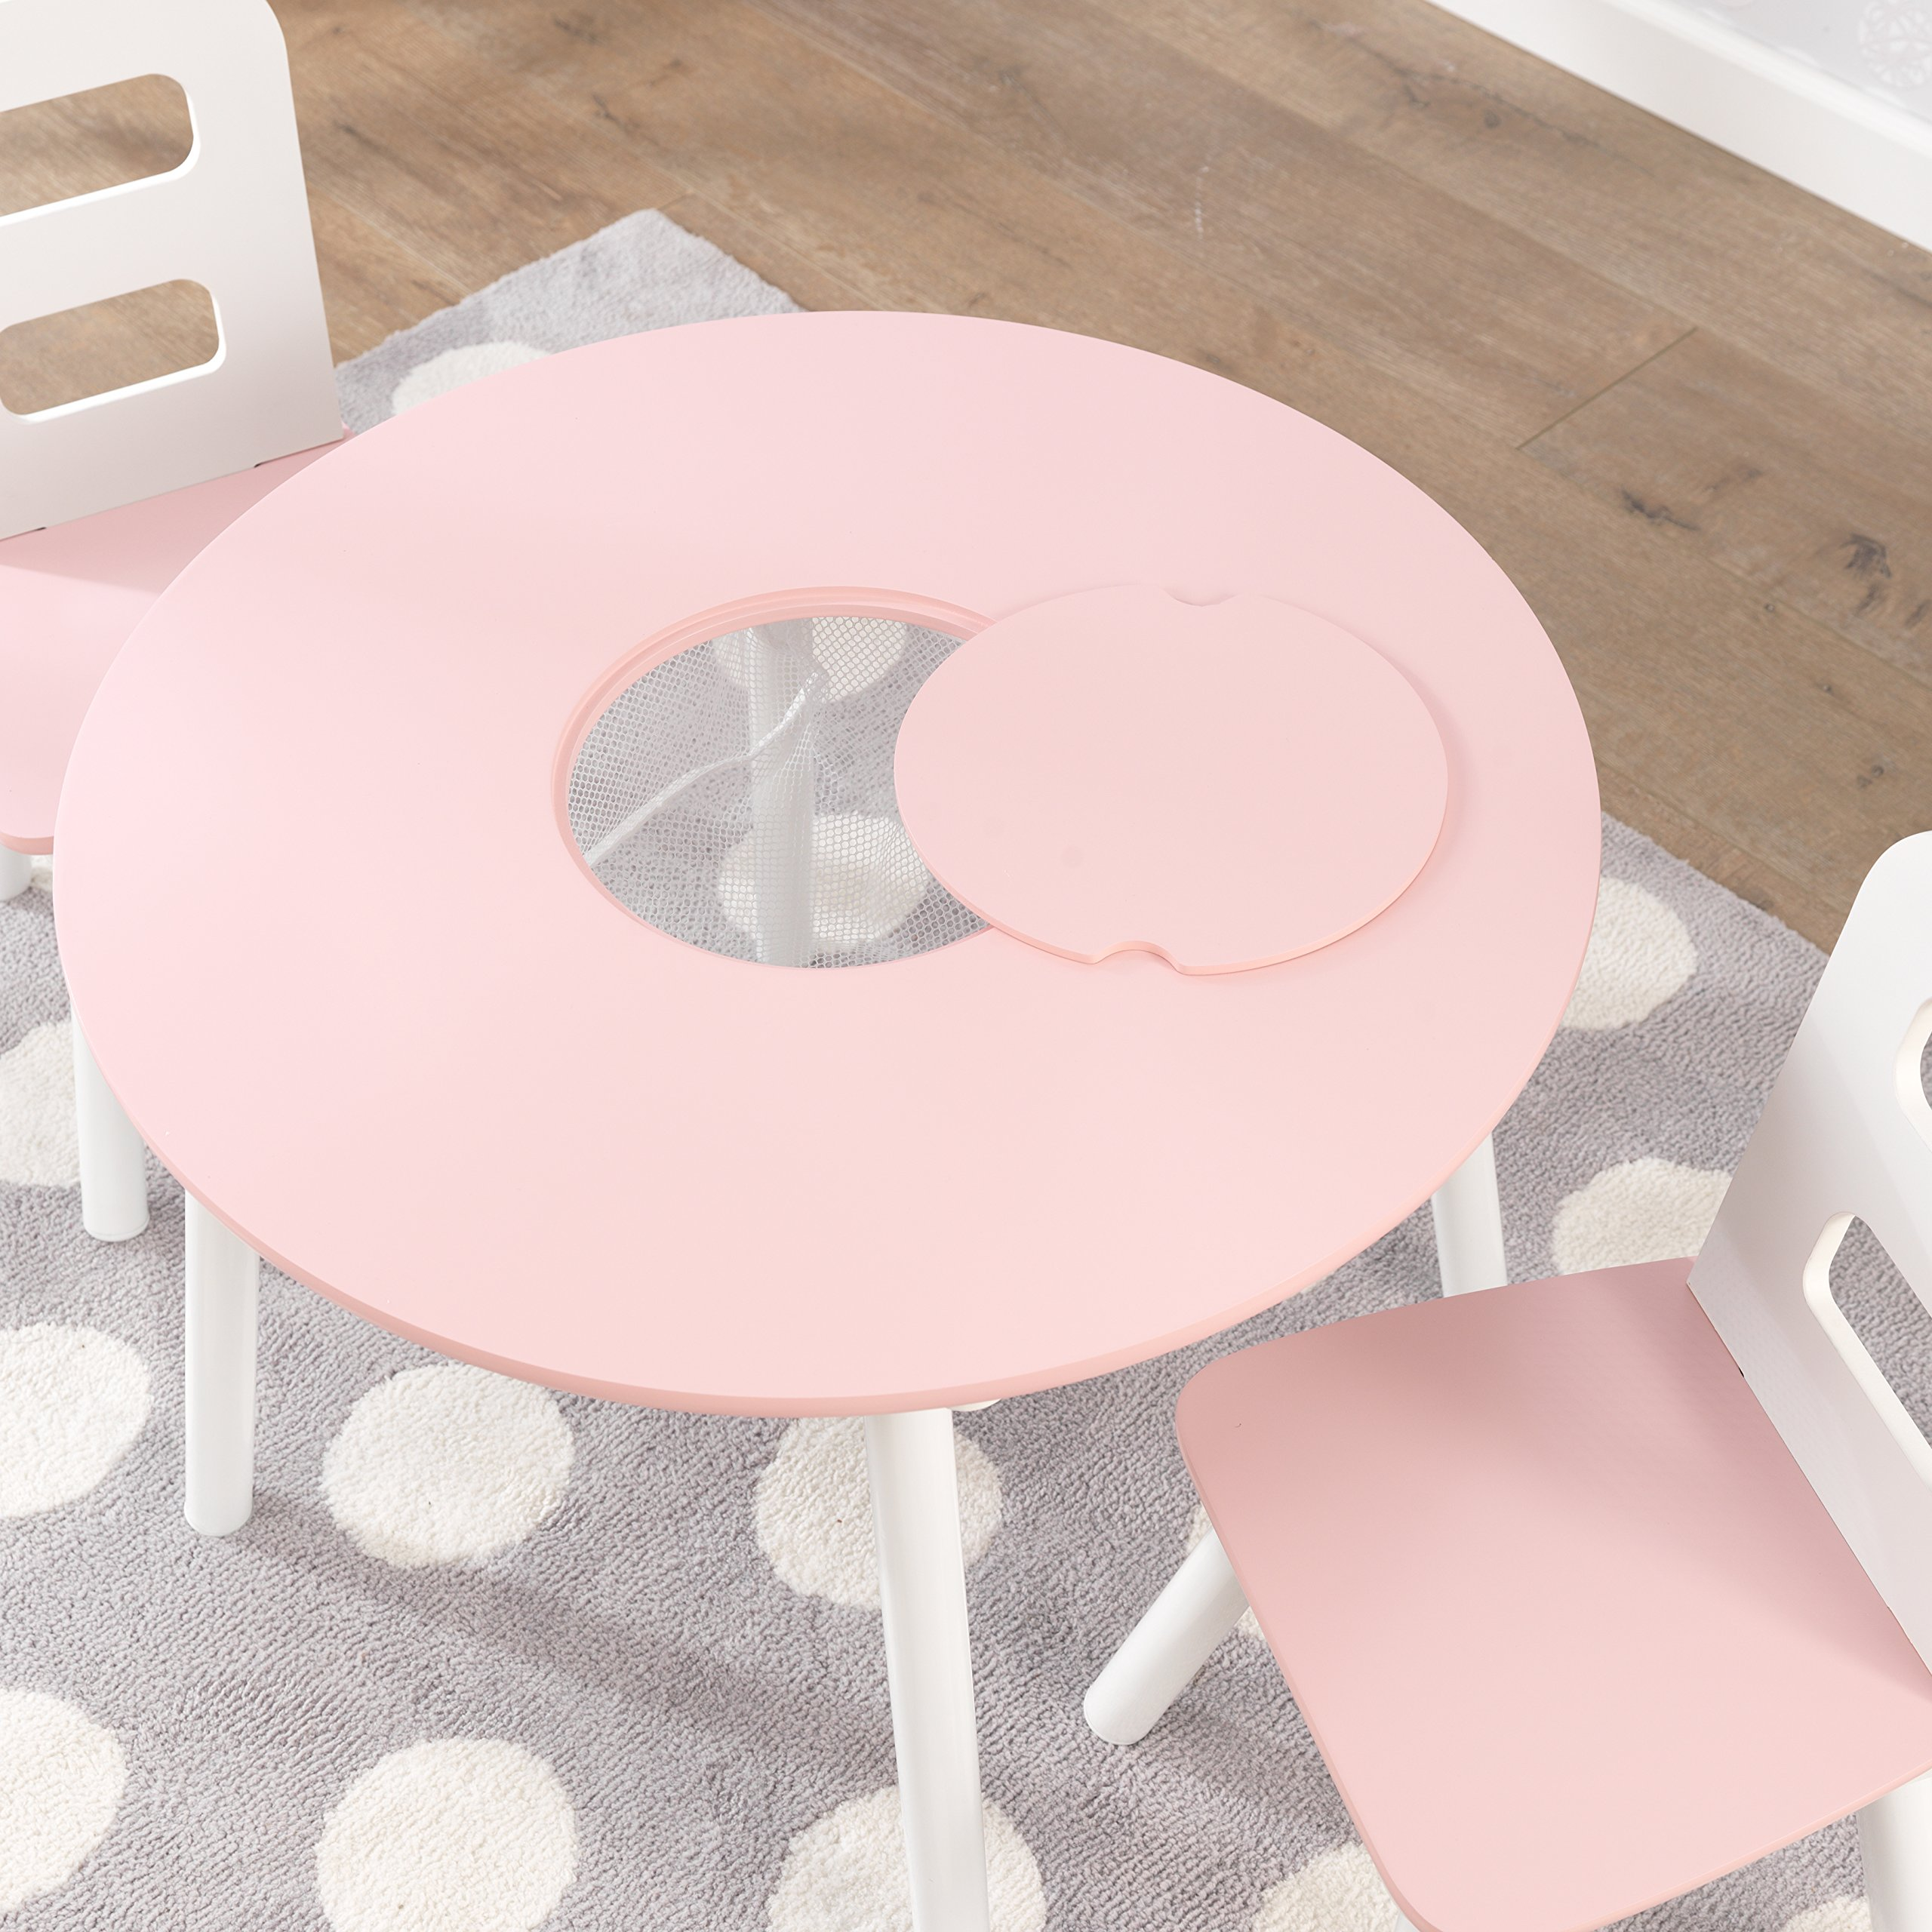 Strange Details About Kidkraft Round Table And 2 Chair Set White Pink Pabps2019 Chair Design Images Pabps2019Com